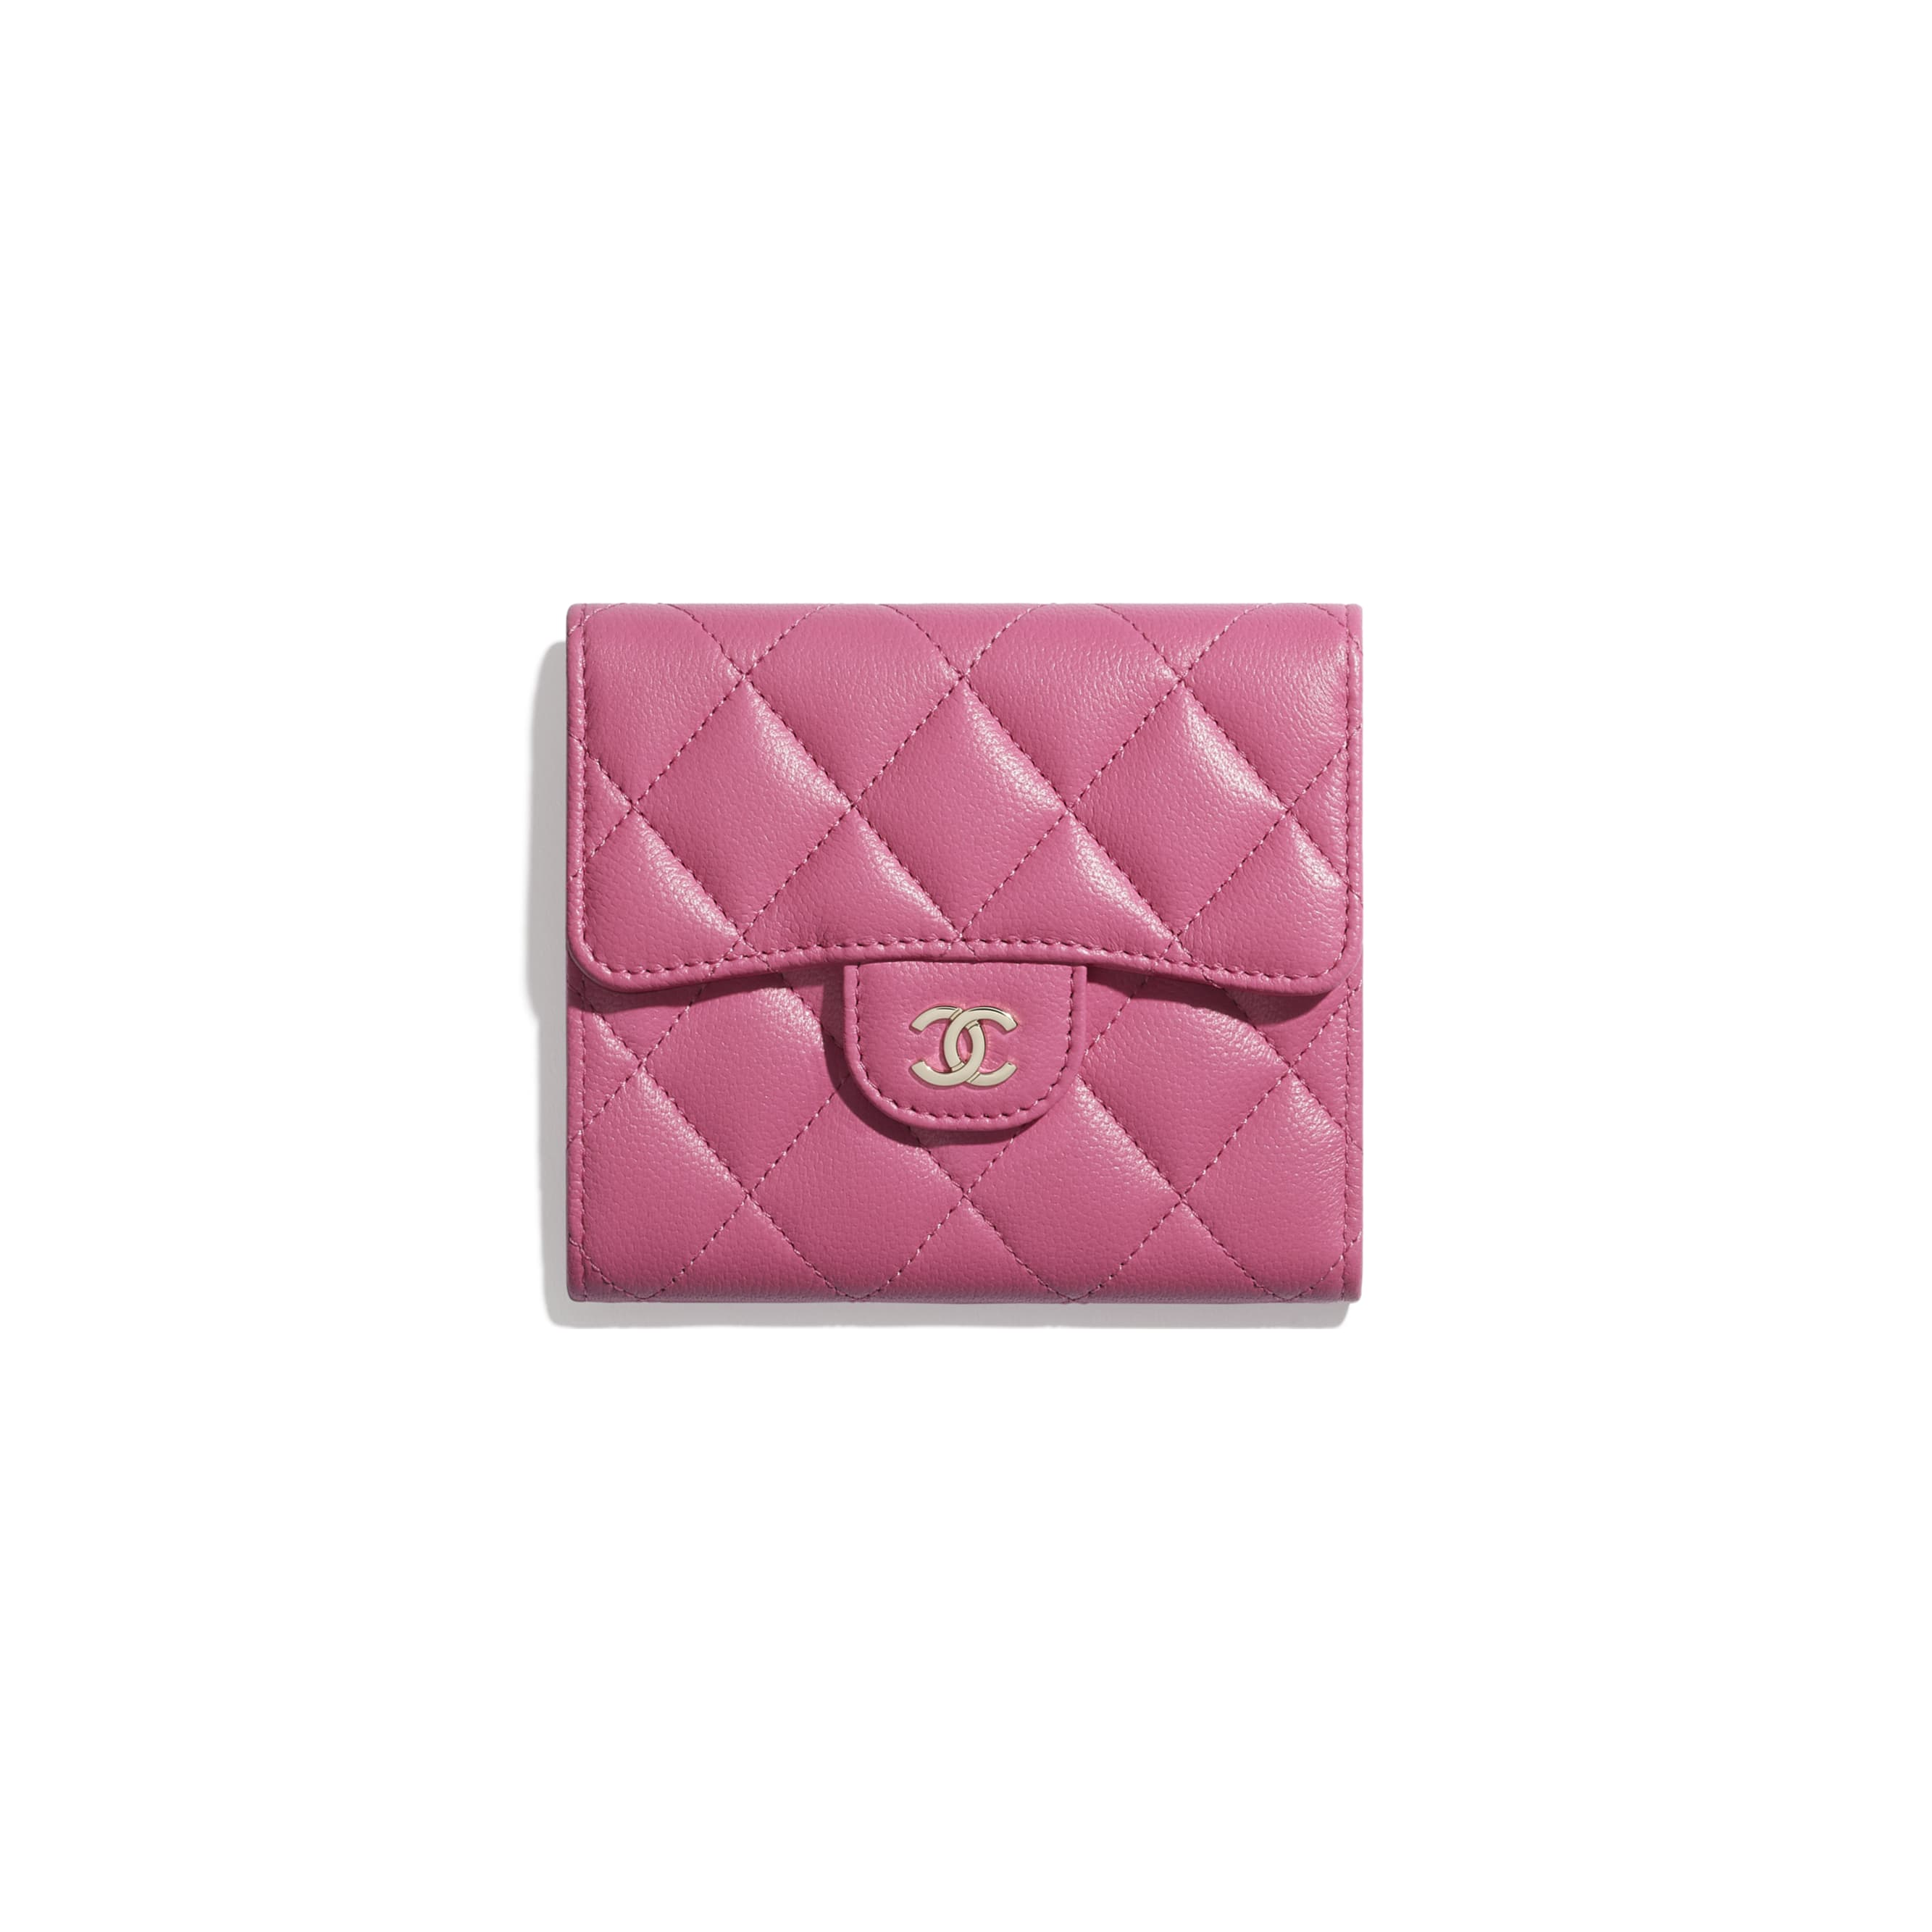 Classic Small Flap Wallet - Pink - Grained Calfskin & Gold-Tone Metal - CHANEL - Default view - see standard sized version